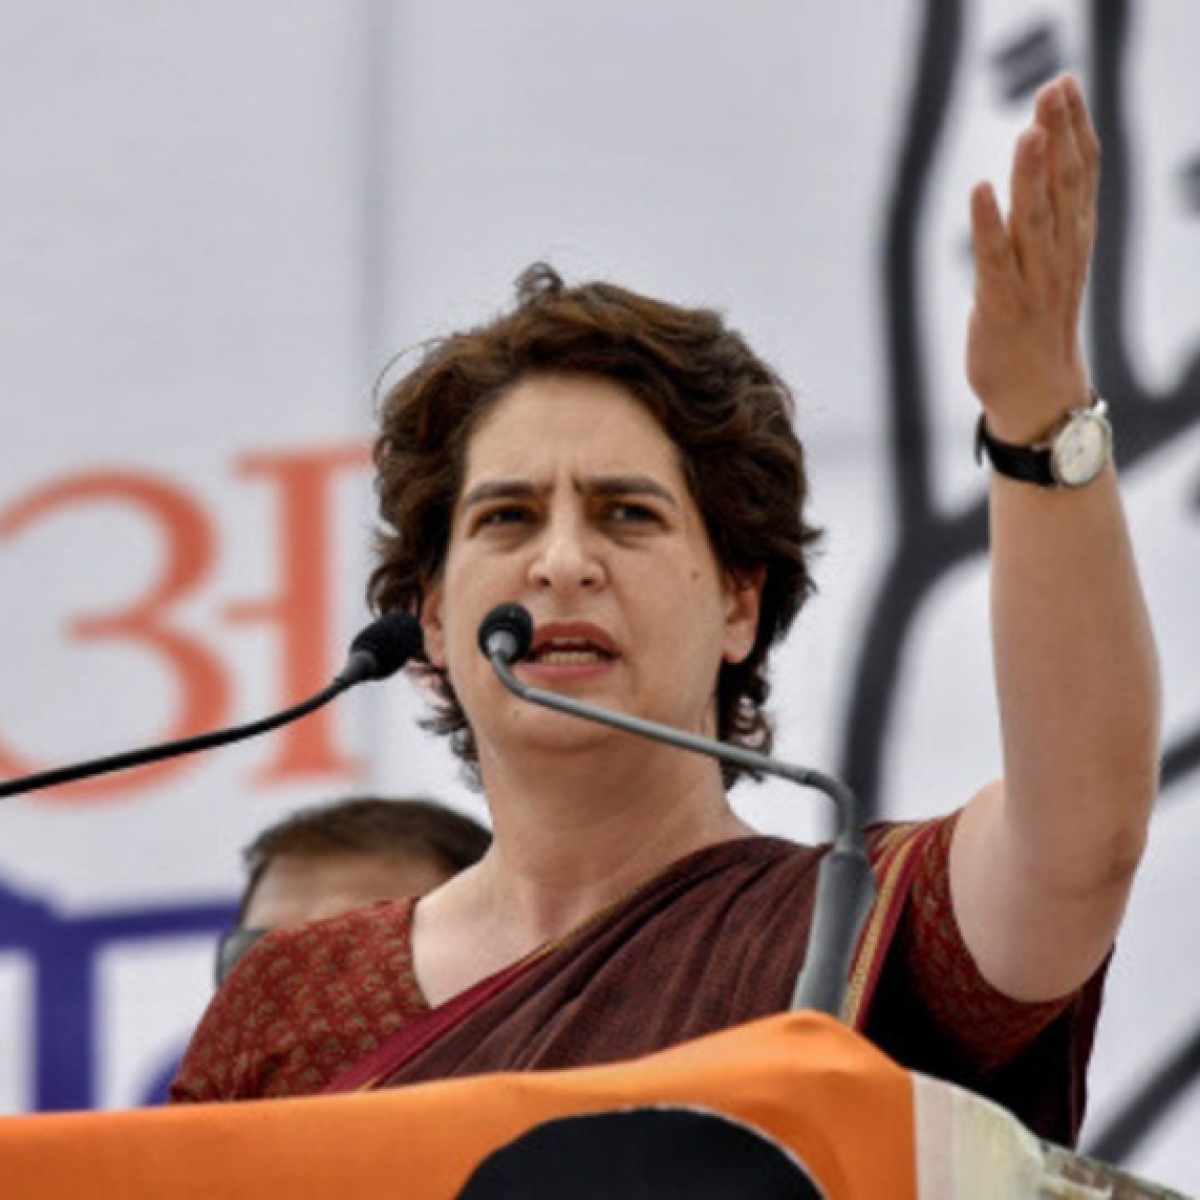 Will vacate govt accommodation at 35 Lodhi Estate by August 1: Priyanka Gandhi Vadra